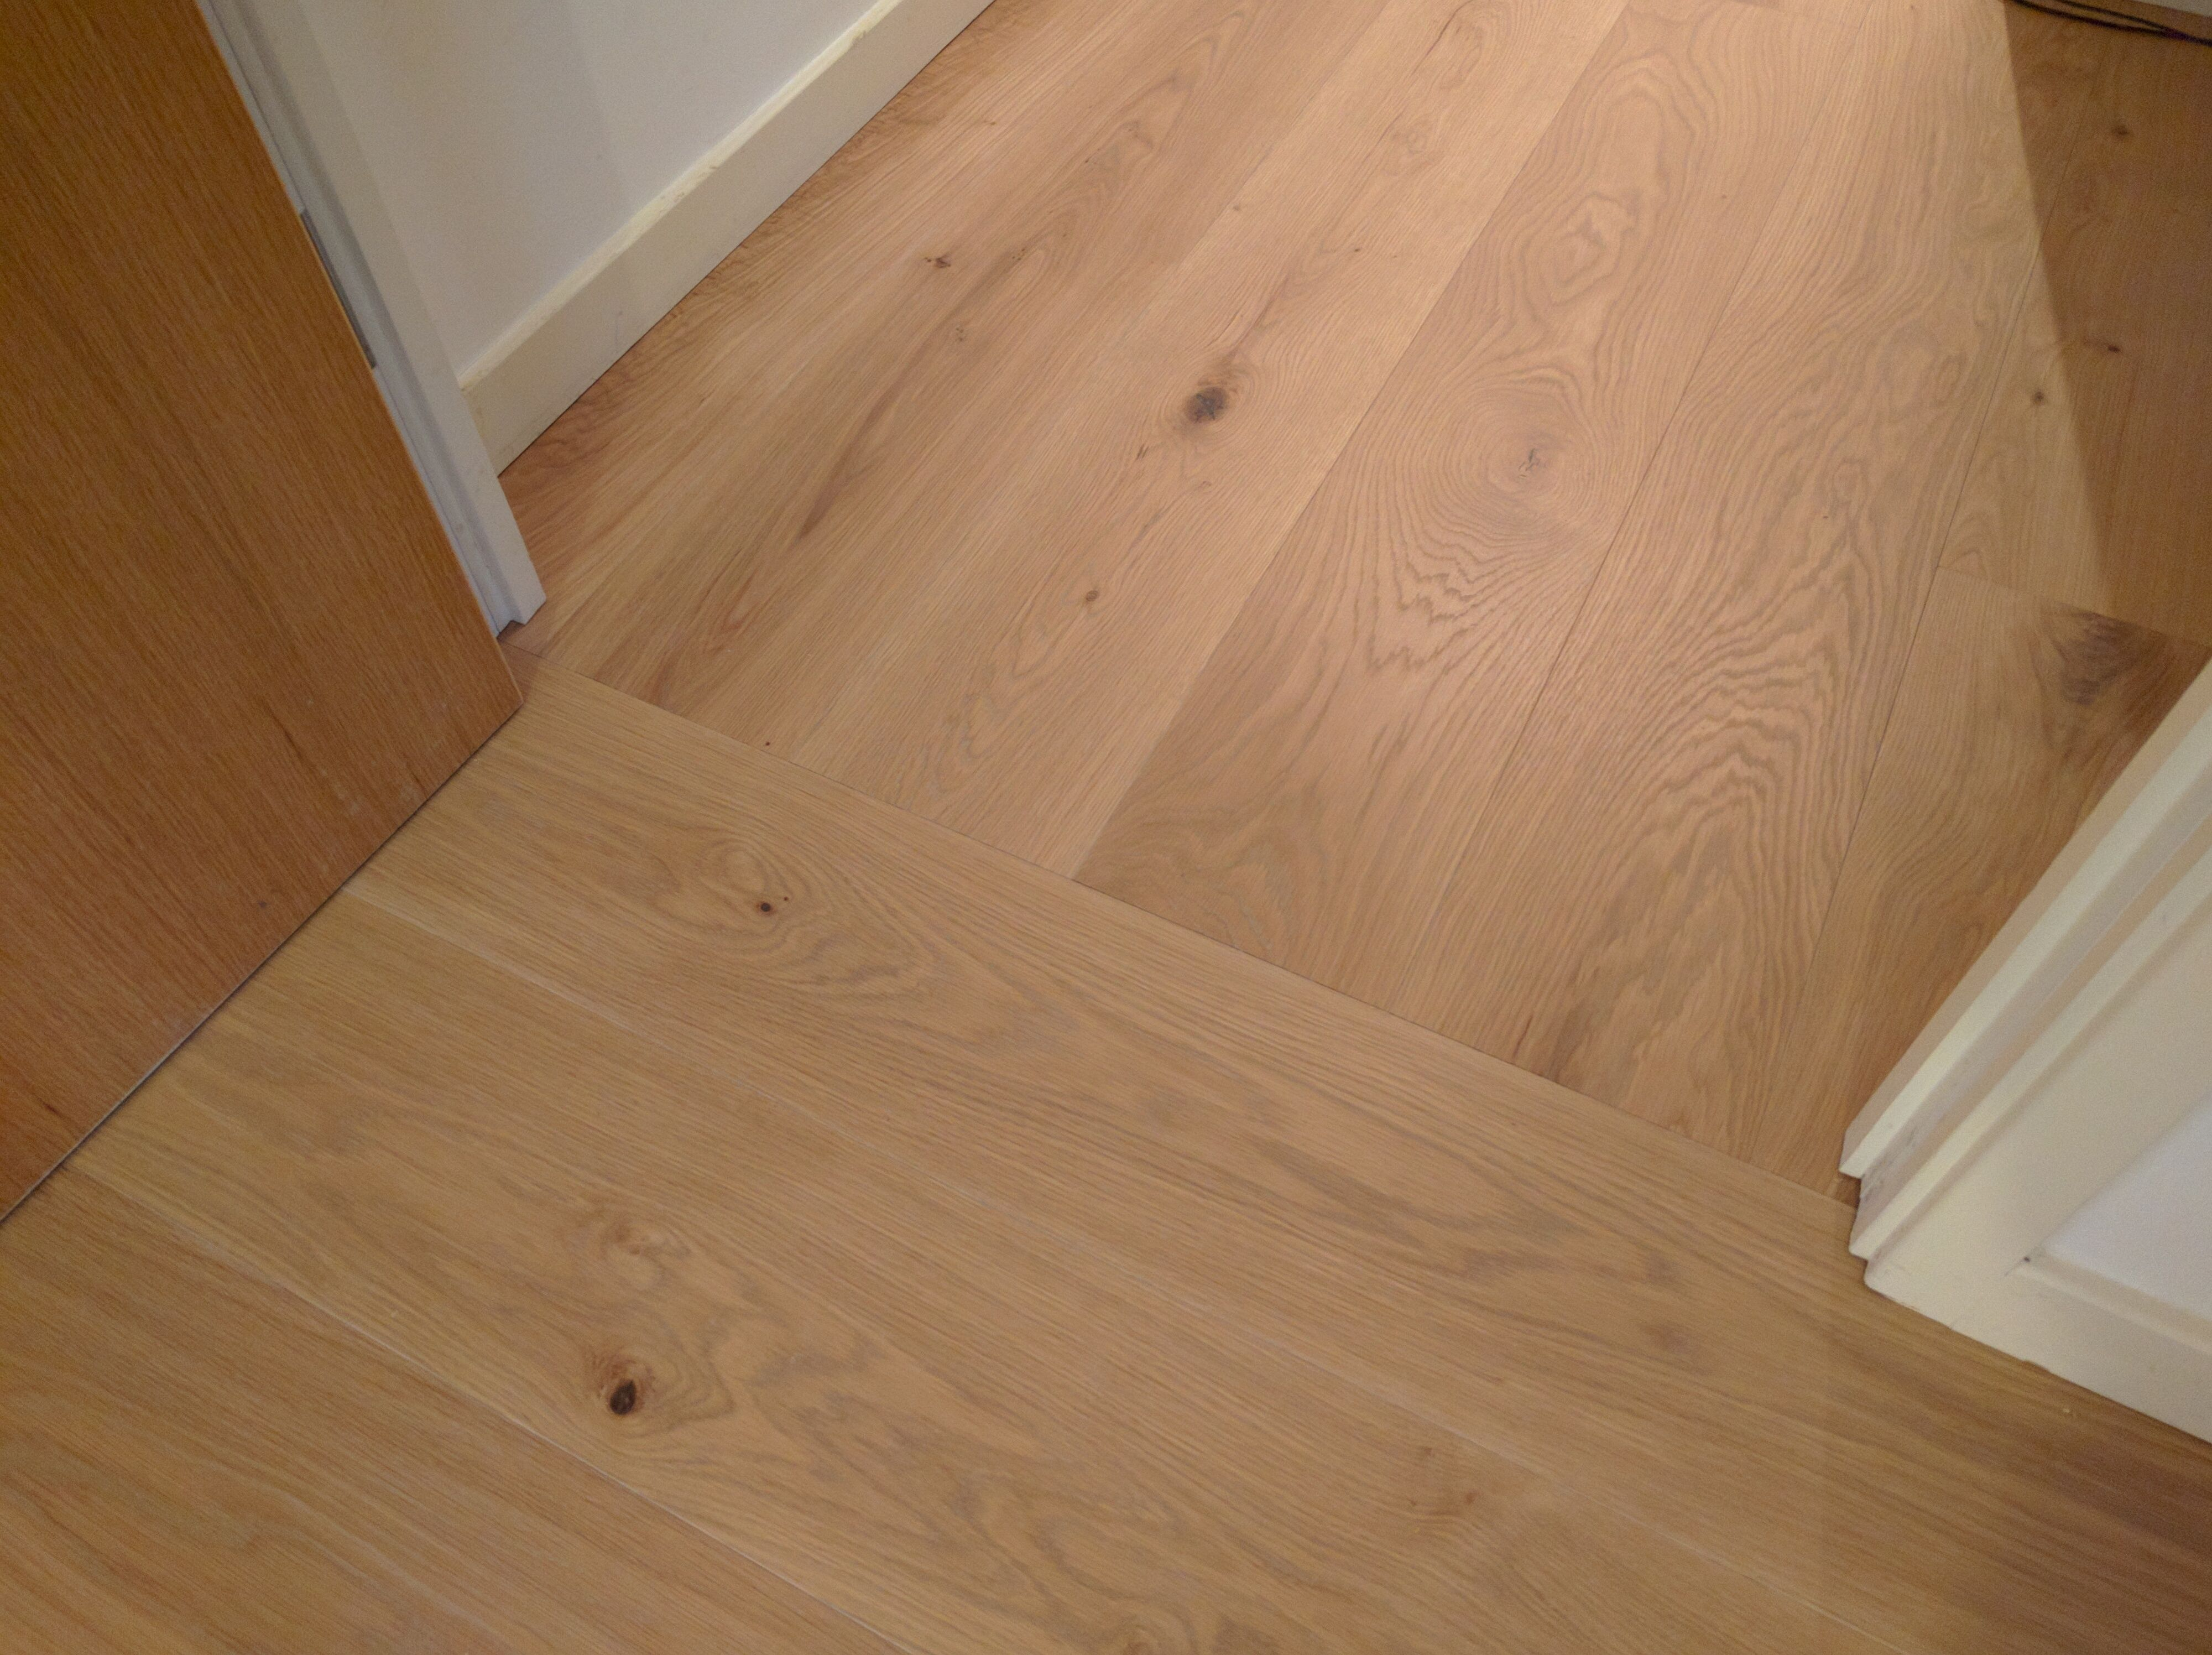 If You Have Wood Flooring In The Hall Leading On To Other Rooms